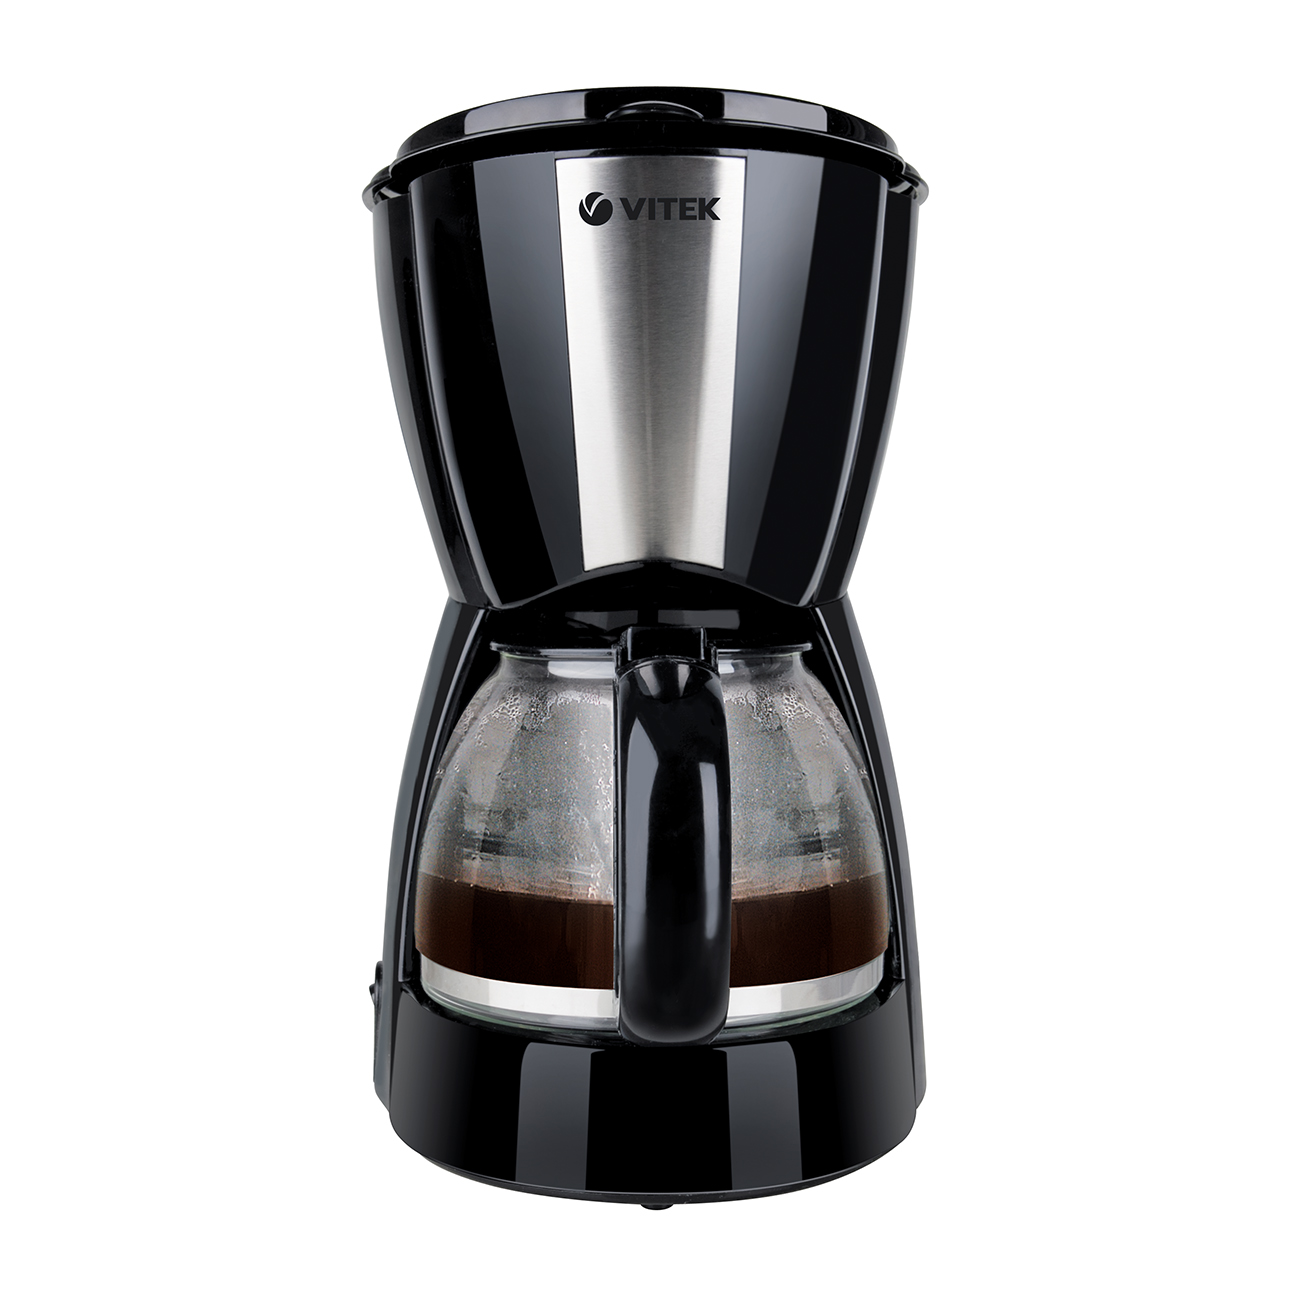 Coffee maker Vitek VT-1503 BK